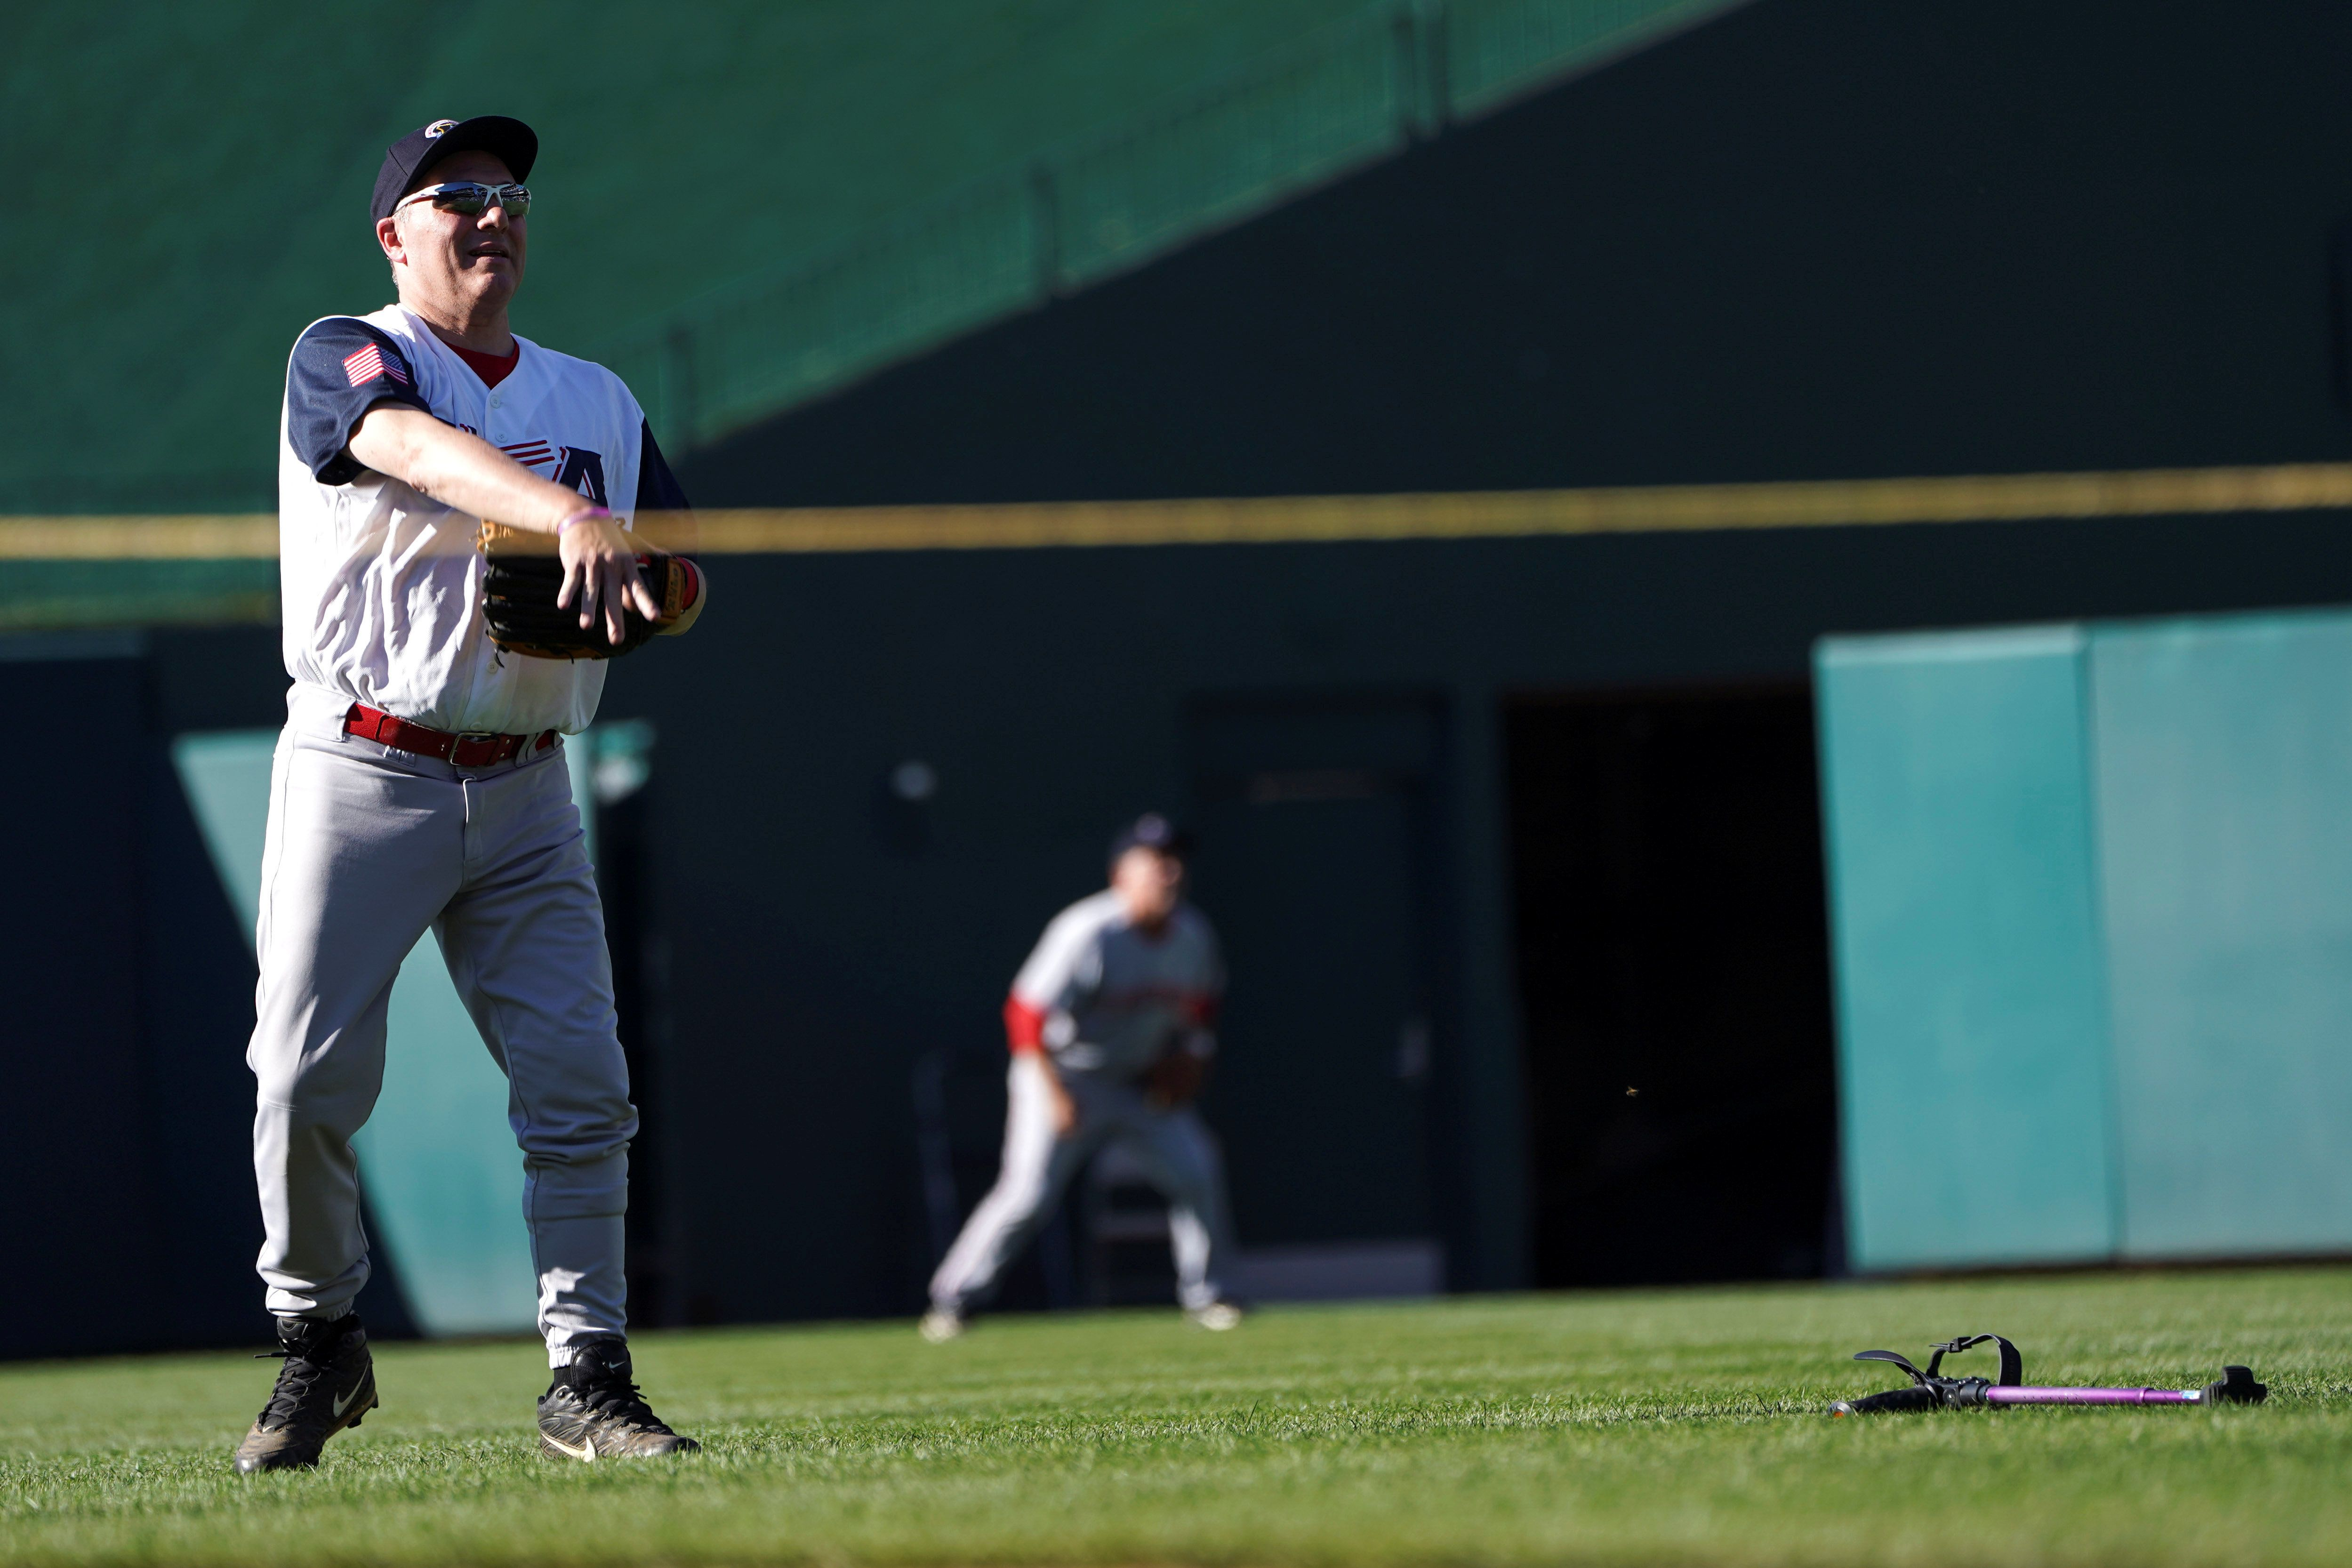 House Majority Whip Steve Scalise (R-LA) warms up as the Democrats and Republicans prepare to face off in the annual Congressional Baseball game at Nationals Park in Washington, U.S., June 14, 2018. REUTERS/Toya Sarno Jordan